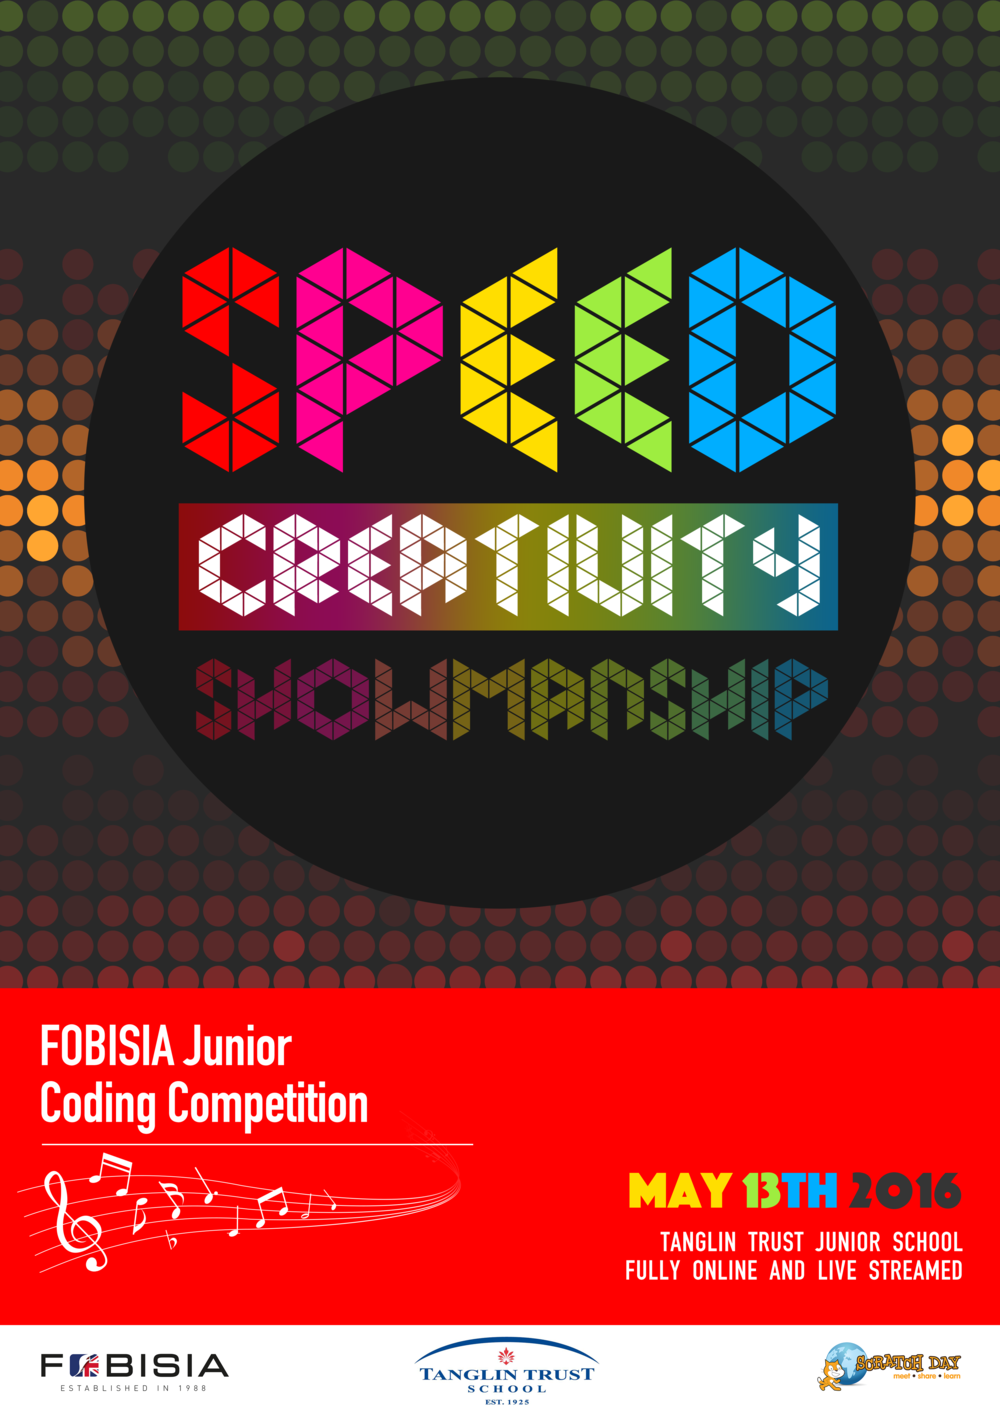 FOBISIA JUNIOR CODING COMP